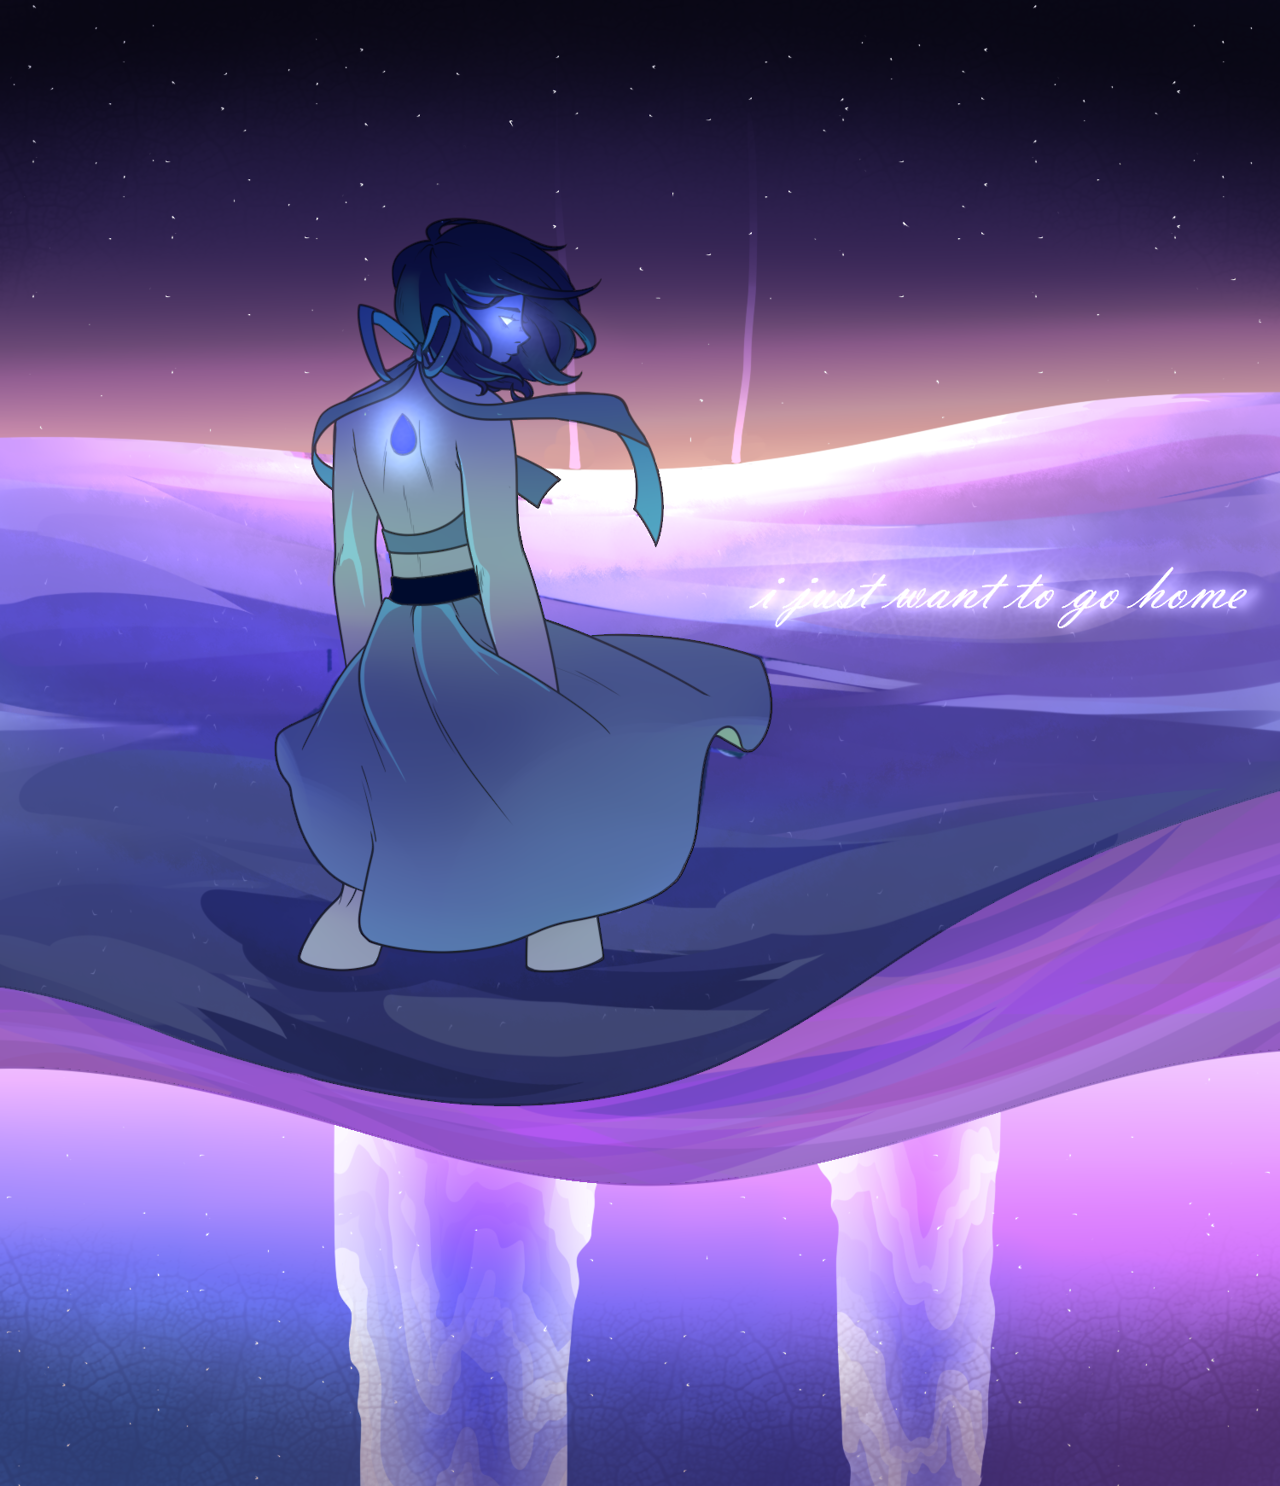 hey its your sad girl lapis lazuli were back at it with this water-witchery